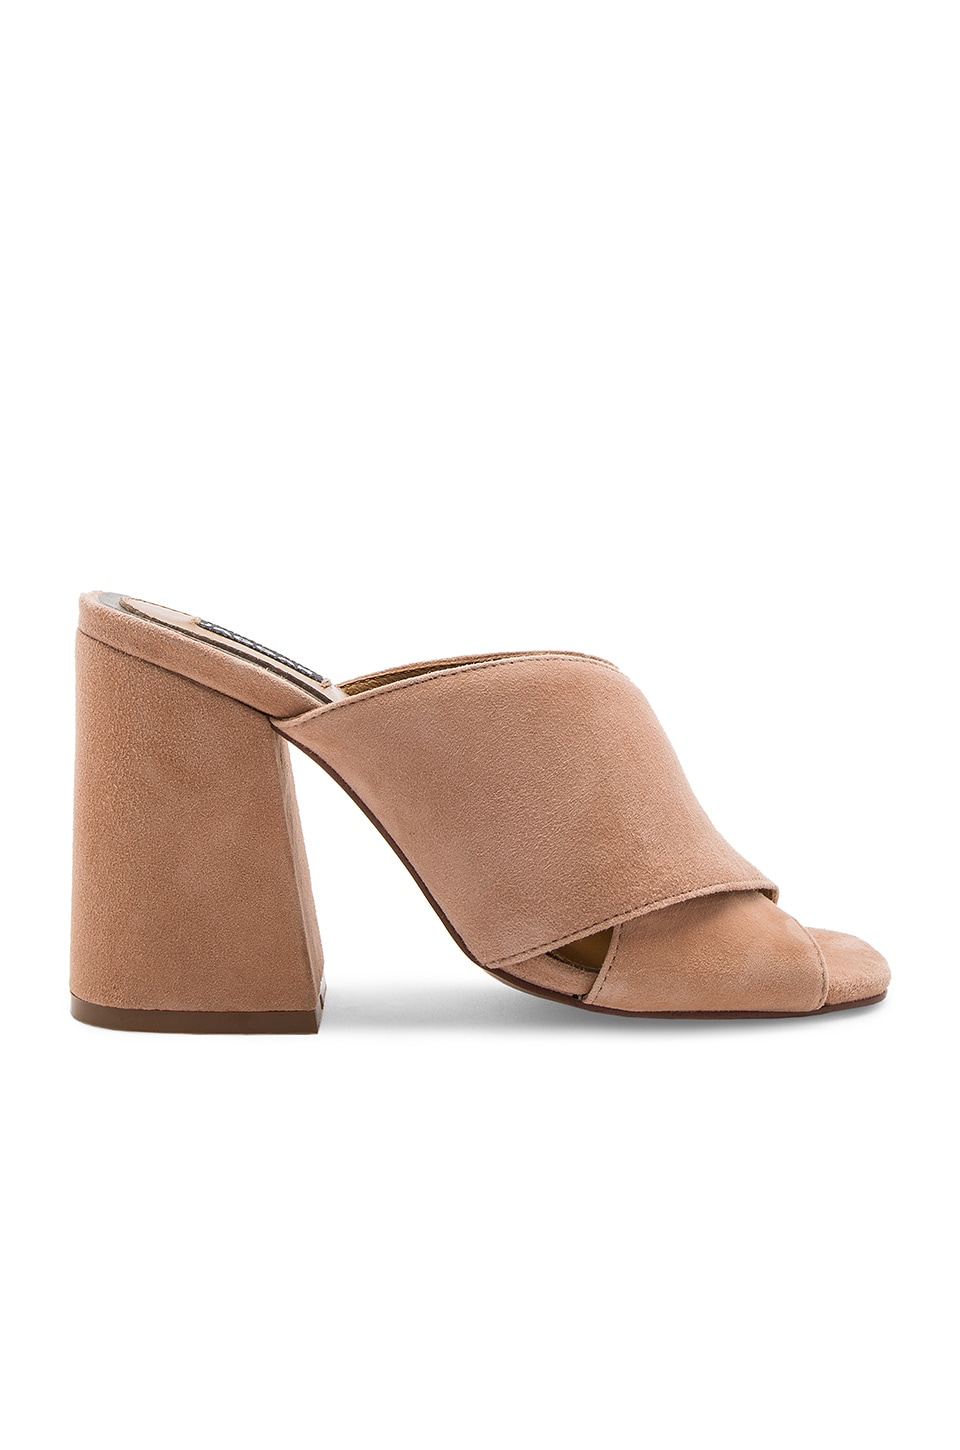 JAGGAR Hypnosis Wedge in Nude